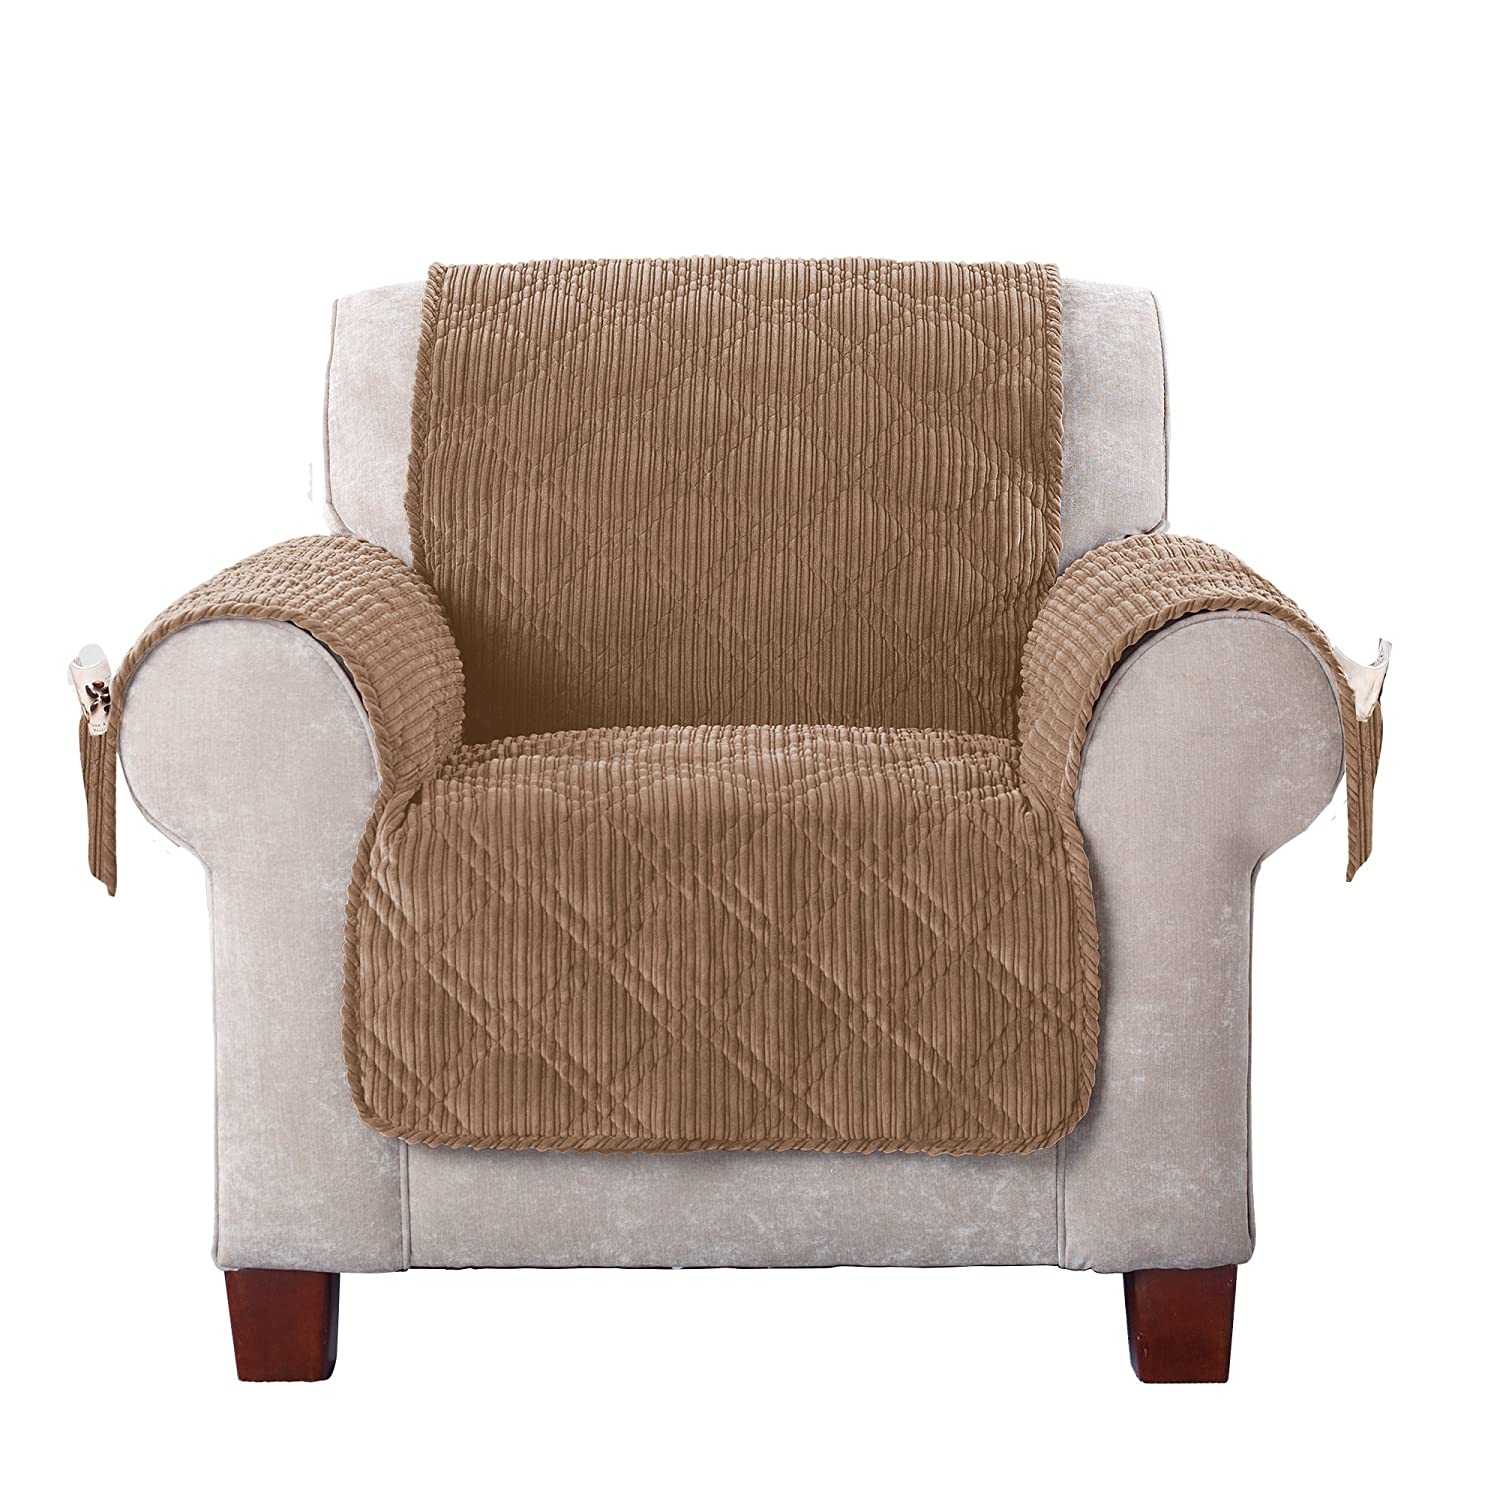 Sure Fit Wide Whale Chair, Furniture Cover, Cream SF43726